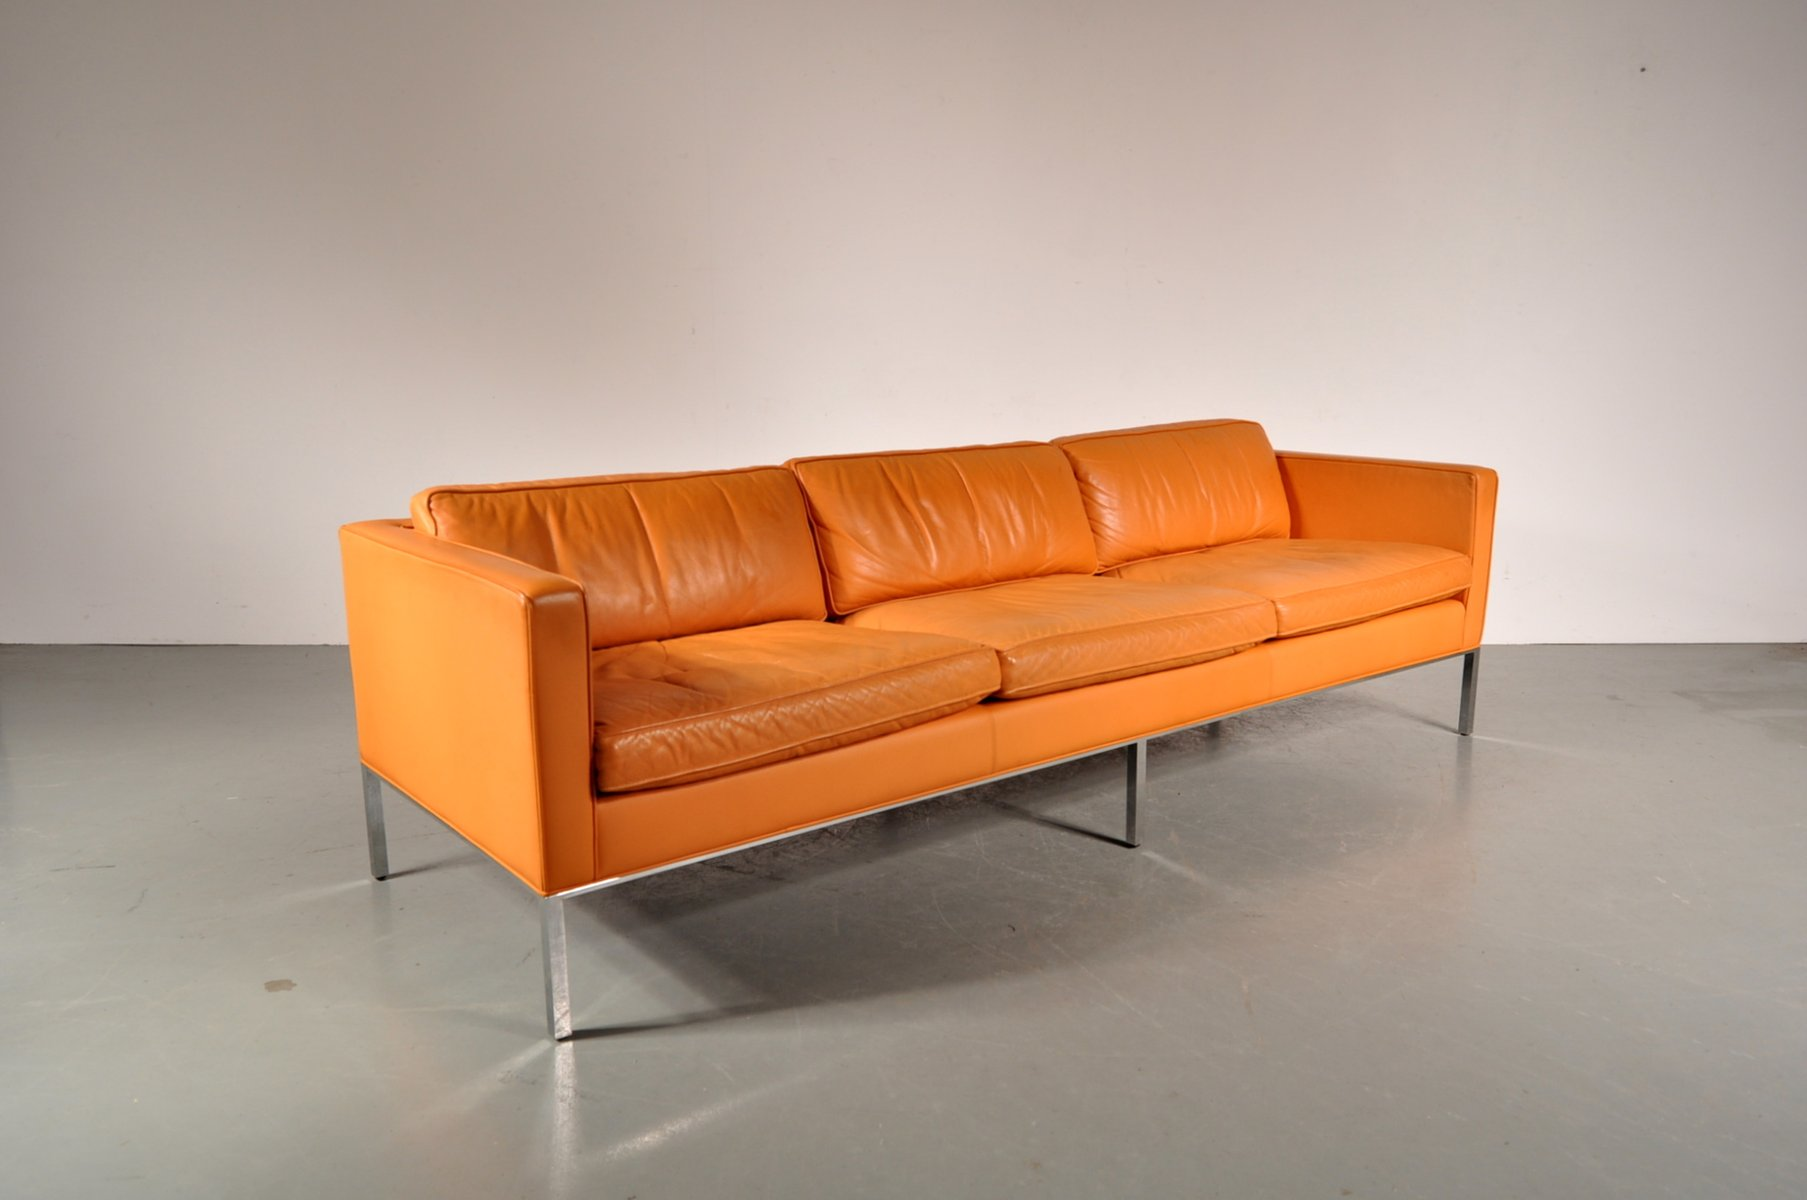 C905 Cognac Leather Sofa by Kho Liang Ie for Artifort for